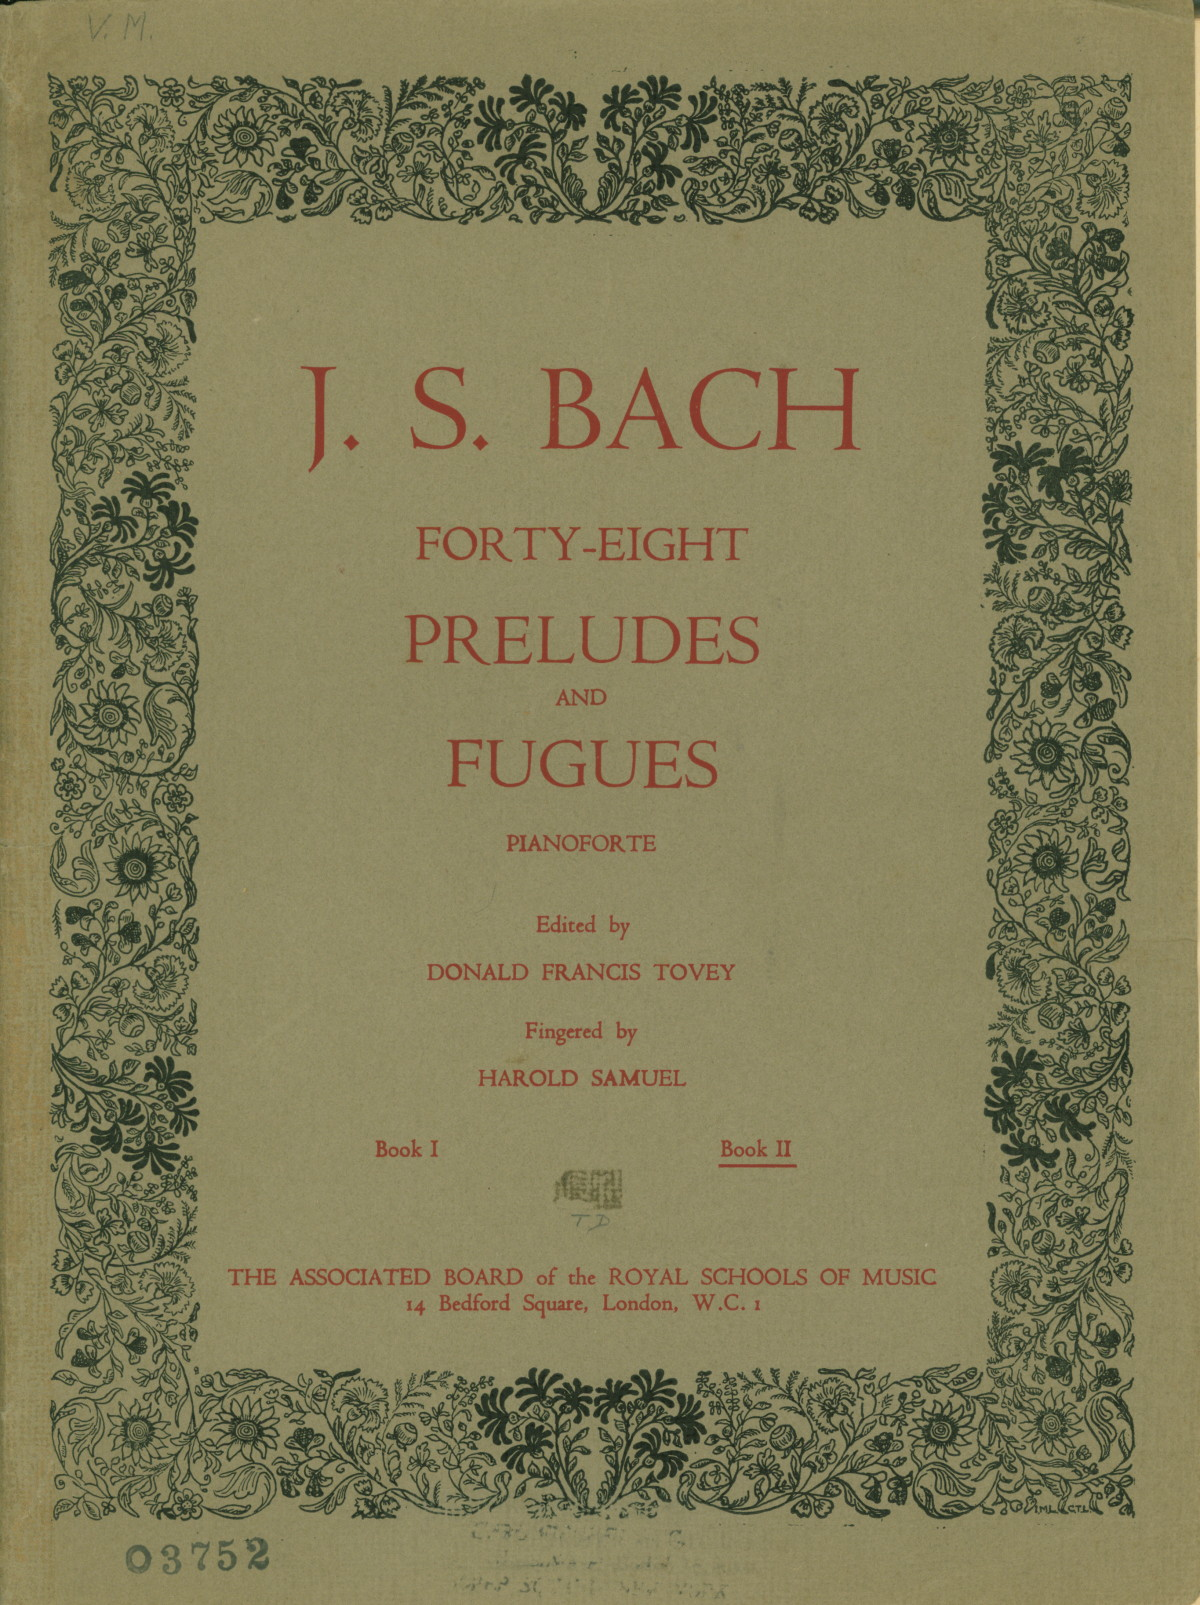 Bach, Johann Sebastian - Forty-Eight Preludes And Fugues. Book II. - (4294)